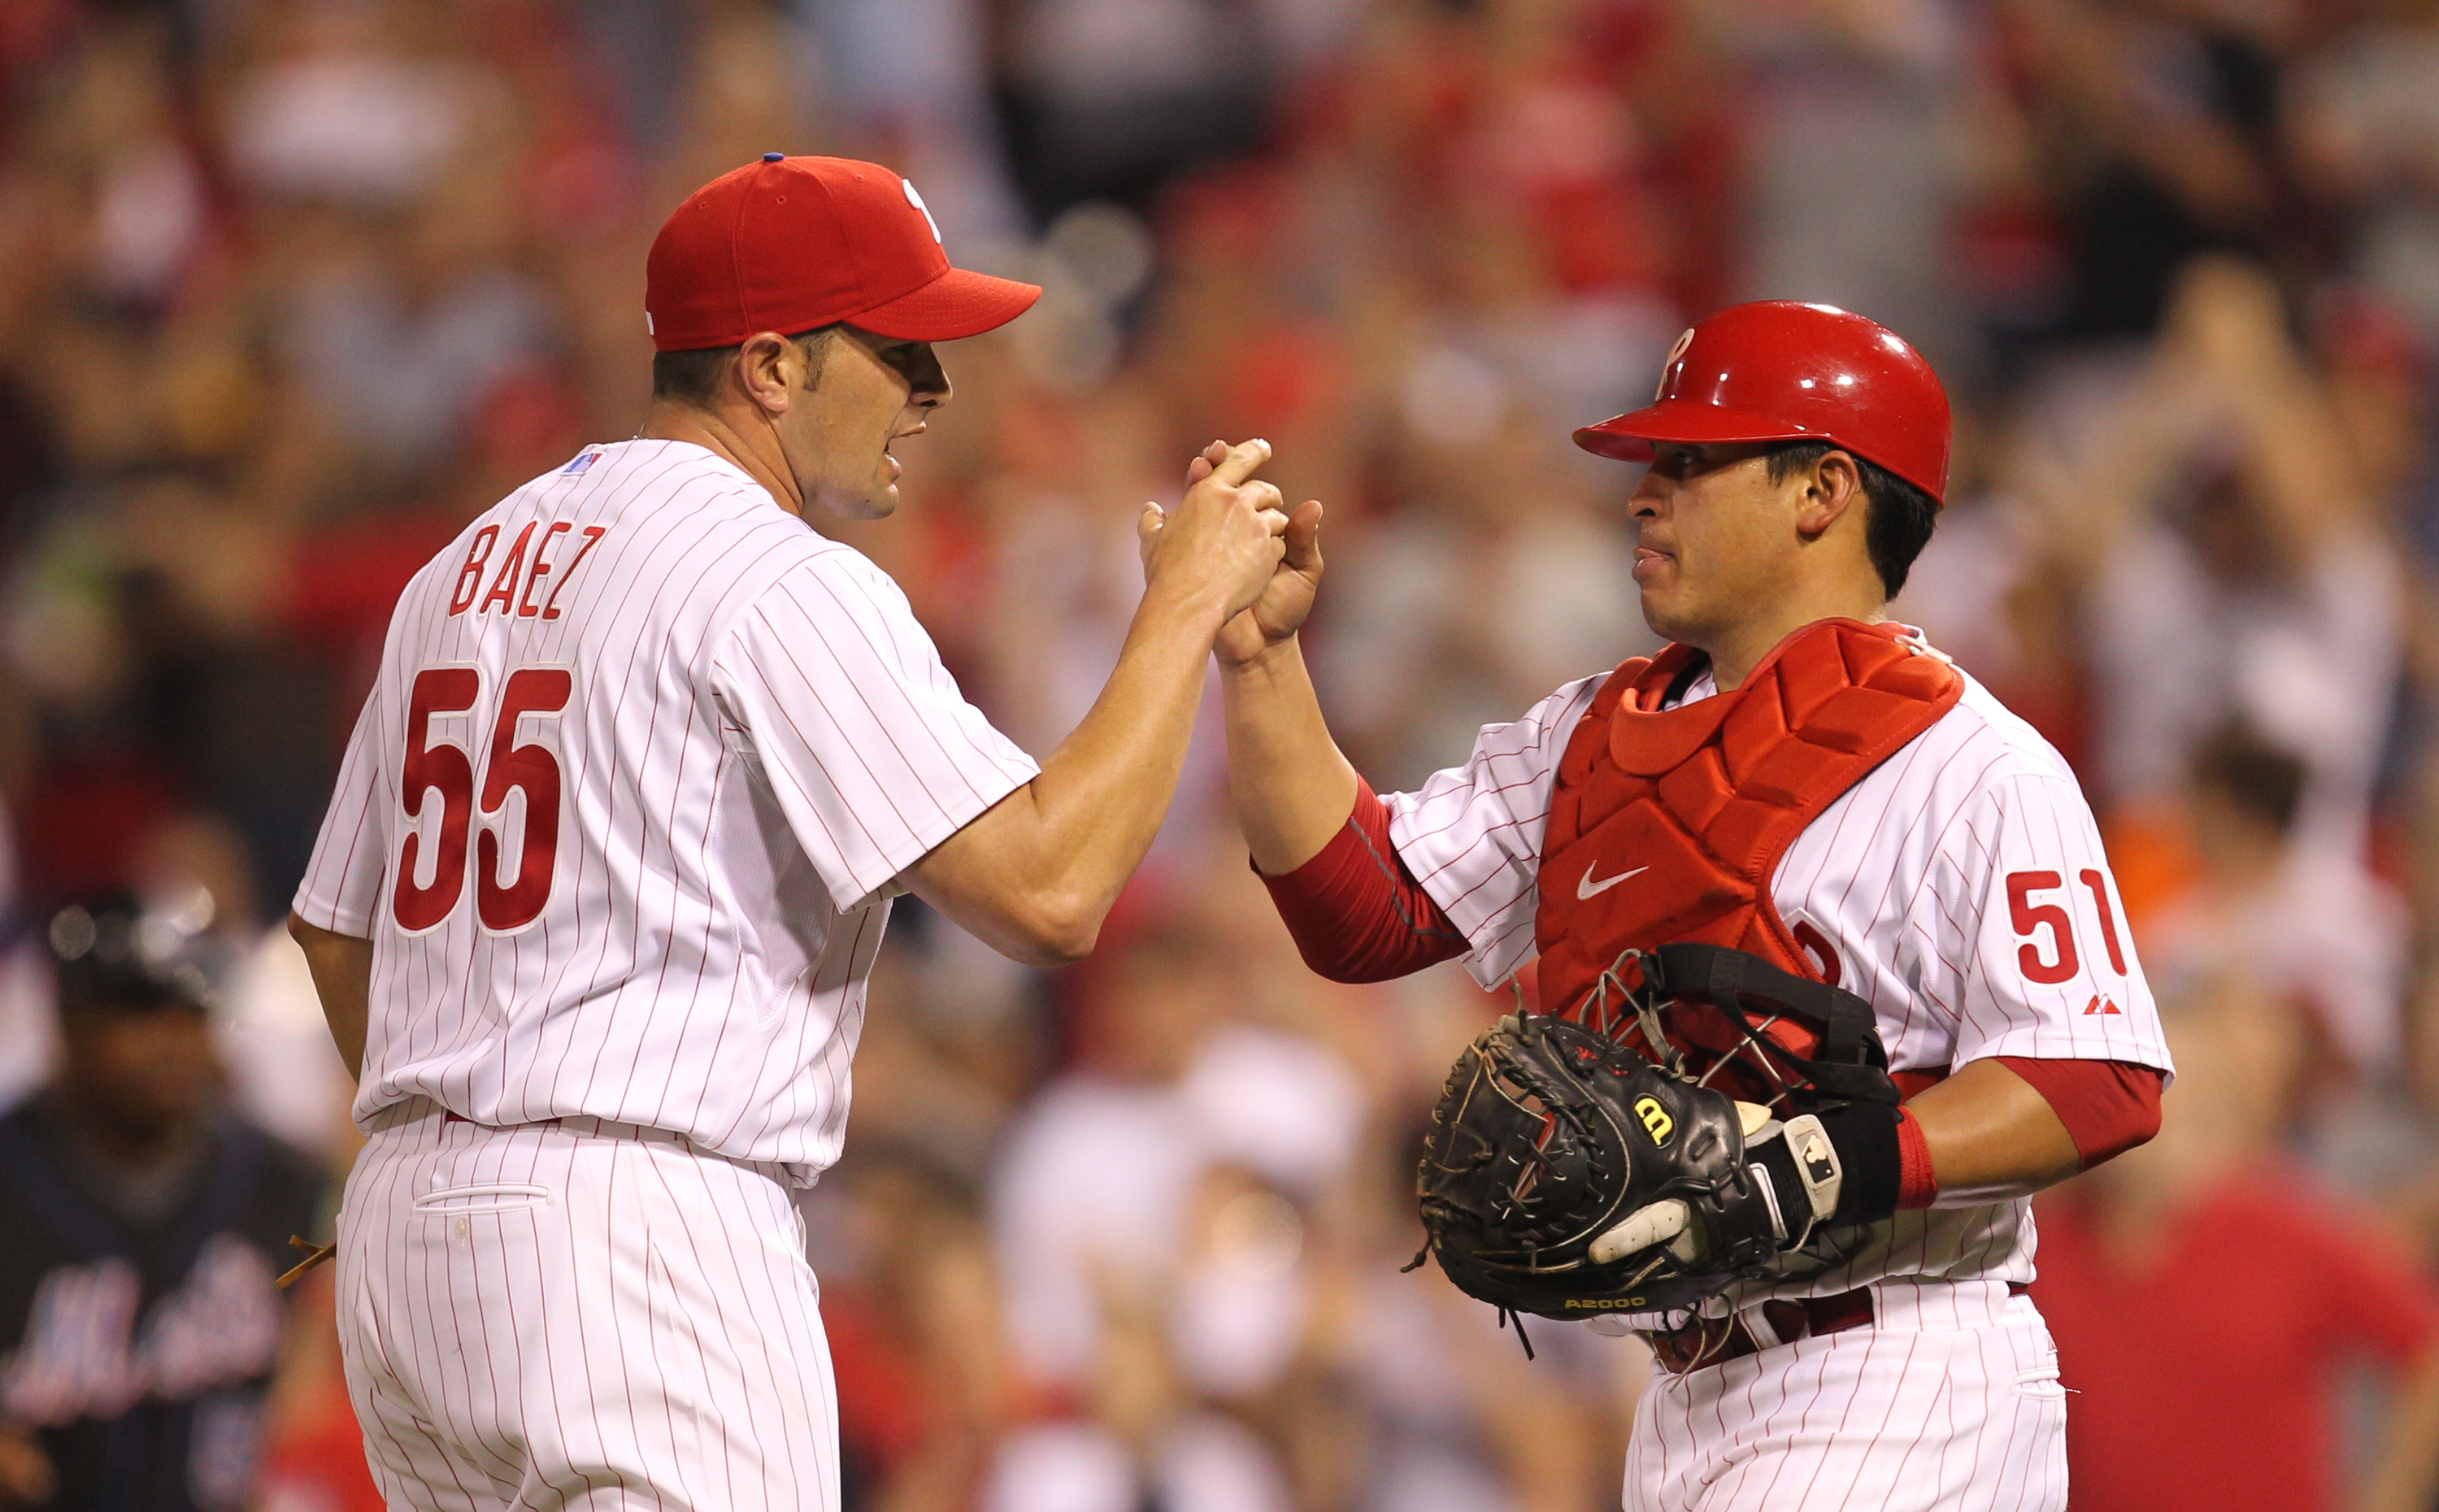 PHILADELPHIA - MAY 2: Relief pitcher Danys Baez #55 of the Philadelphia Phillies is congratulated by catcher Carlos Ruiz #51 after  a game against the New York Mets at Citizens Bank Park on May 2, 2010 in Philadelphia, Pennsylvania. The Phillies won 11-5.